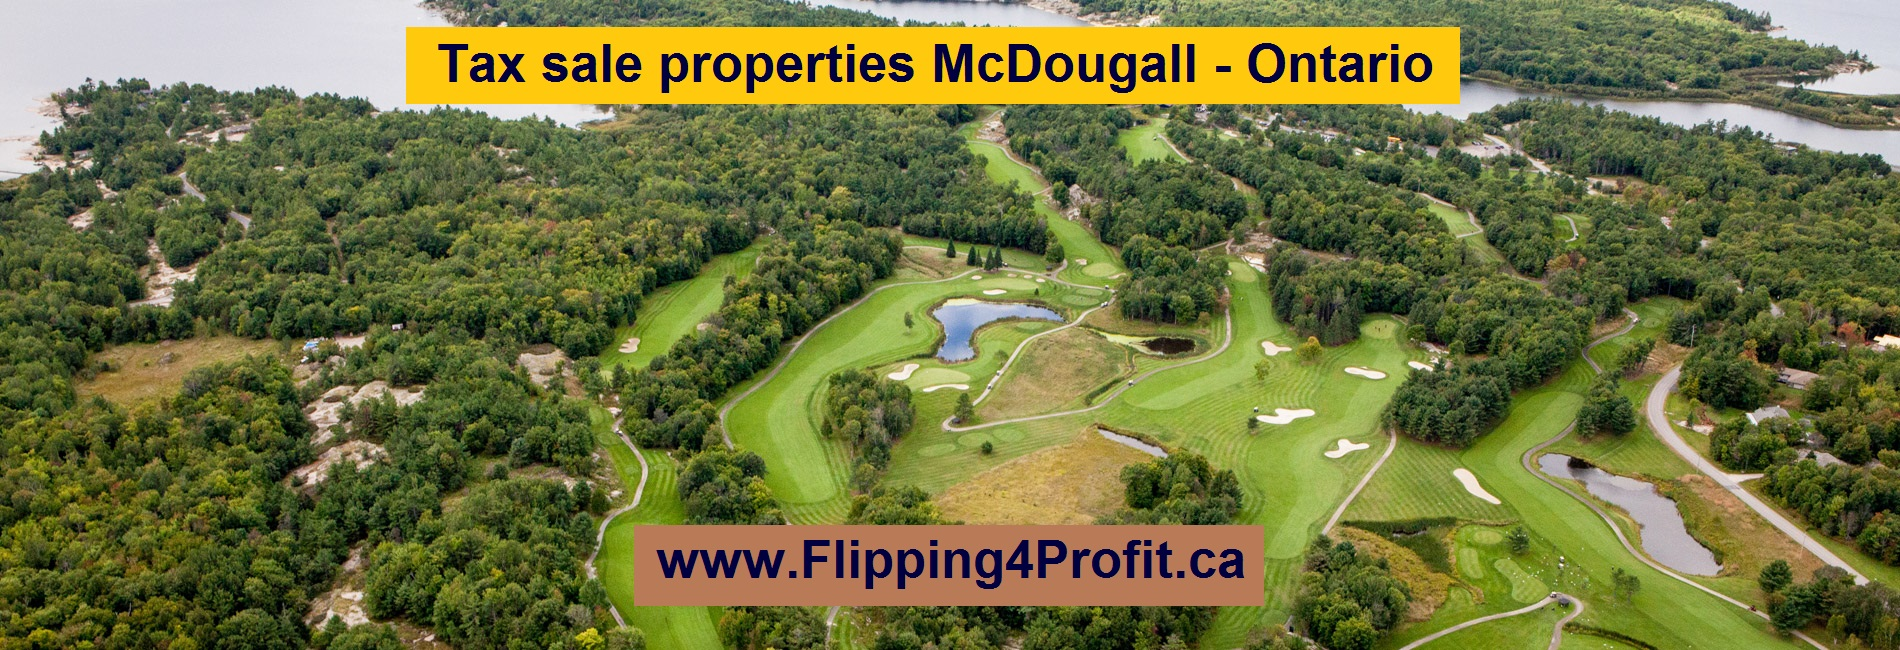 Tax sale propeties McDougall - Ontario